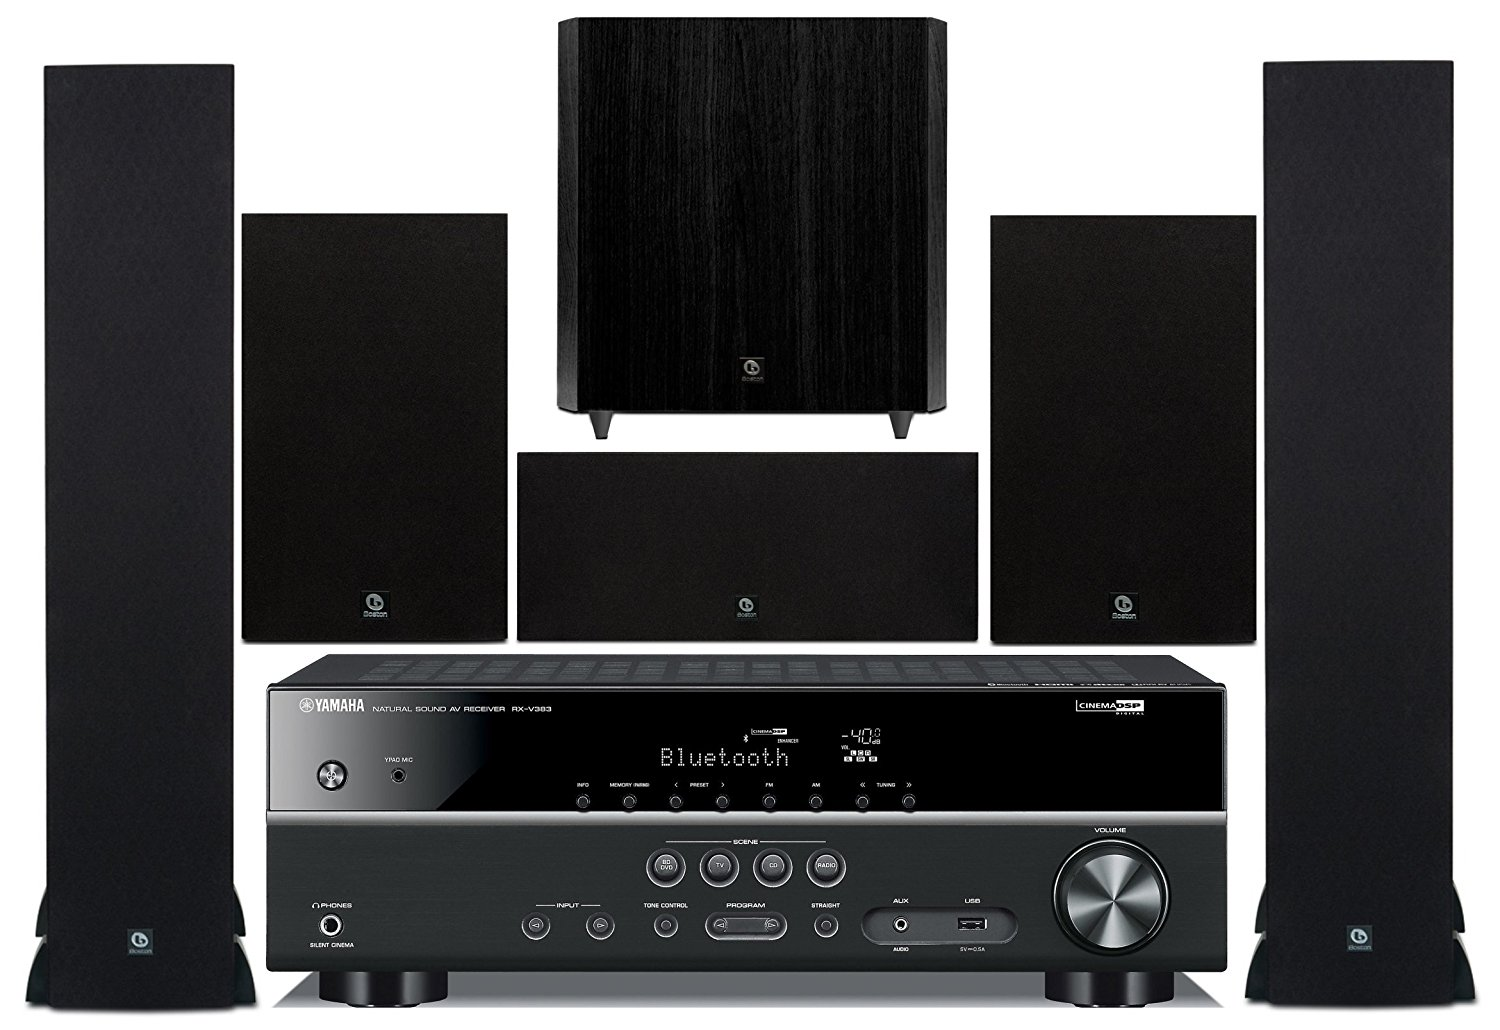 Yamaha 5.1-Channel Wireless Bluetooth 4K 3D A V Surround Sound Multimedia Home Theater System by Yamaha